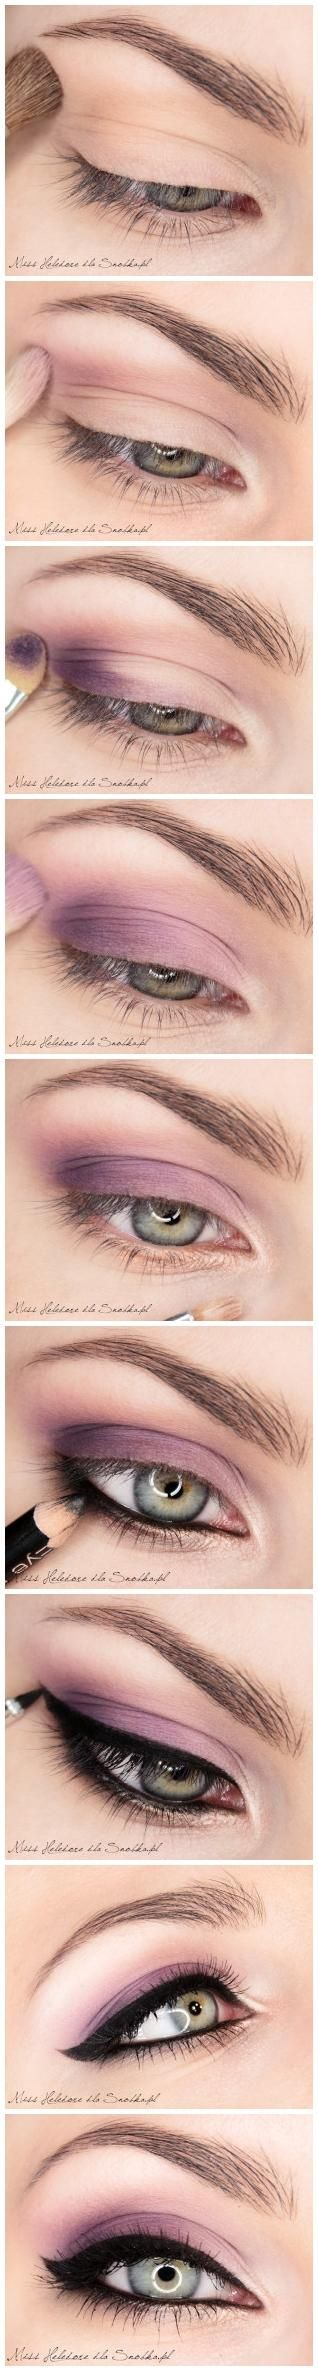 eyeliner + purple eye shadow: Purple Eyeshadows, Make Up, Pretty Eye, Cat Eye, Eye Shadows, Eyemakeup, Smokey Eye, Green Eye, Eye Makeup Tutorials